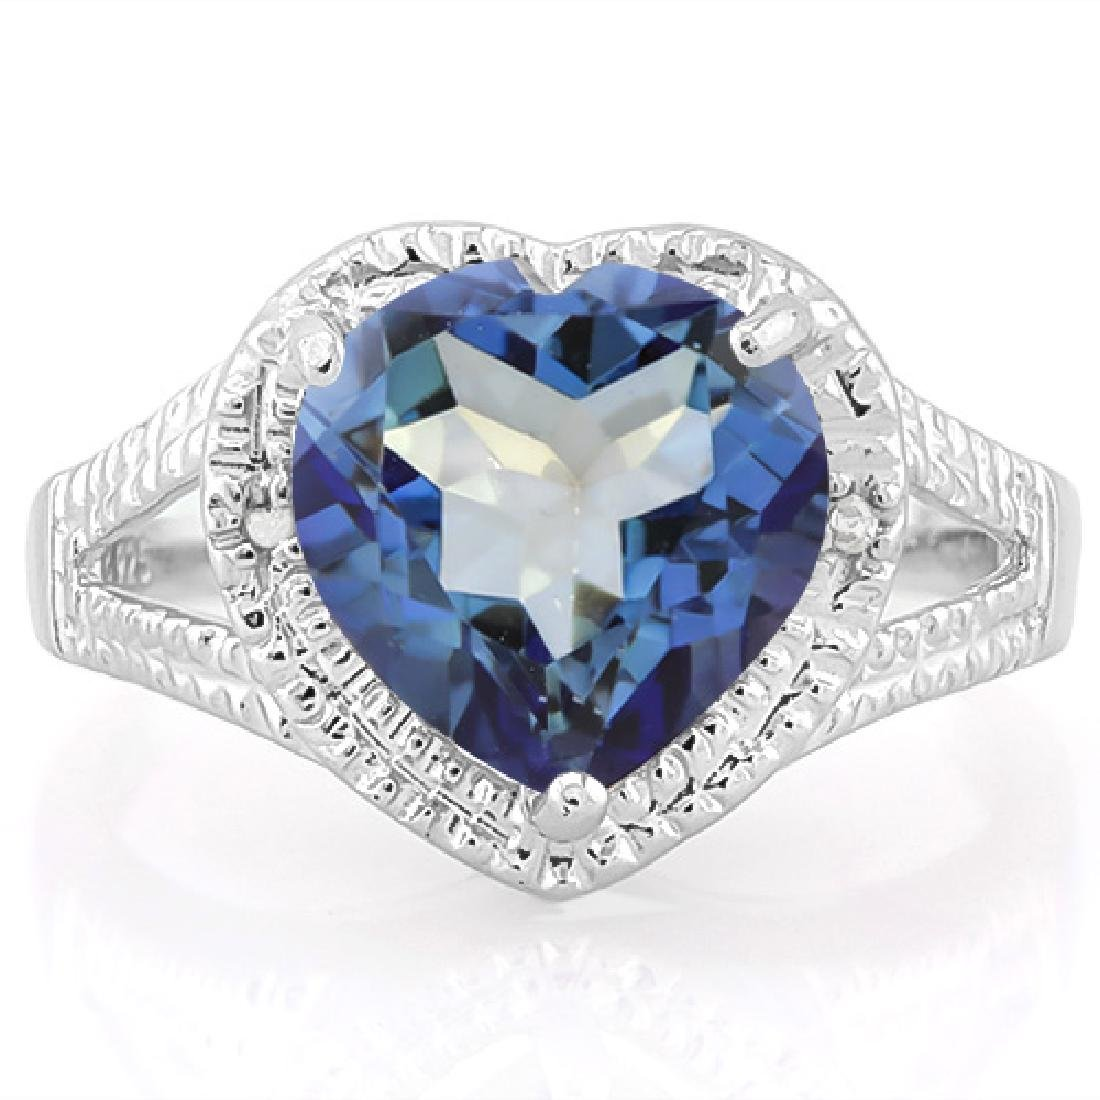 Heart Cut 5CT Violet Mystic Topaz and Diamond Ring in